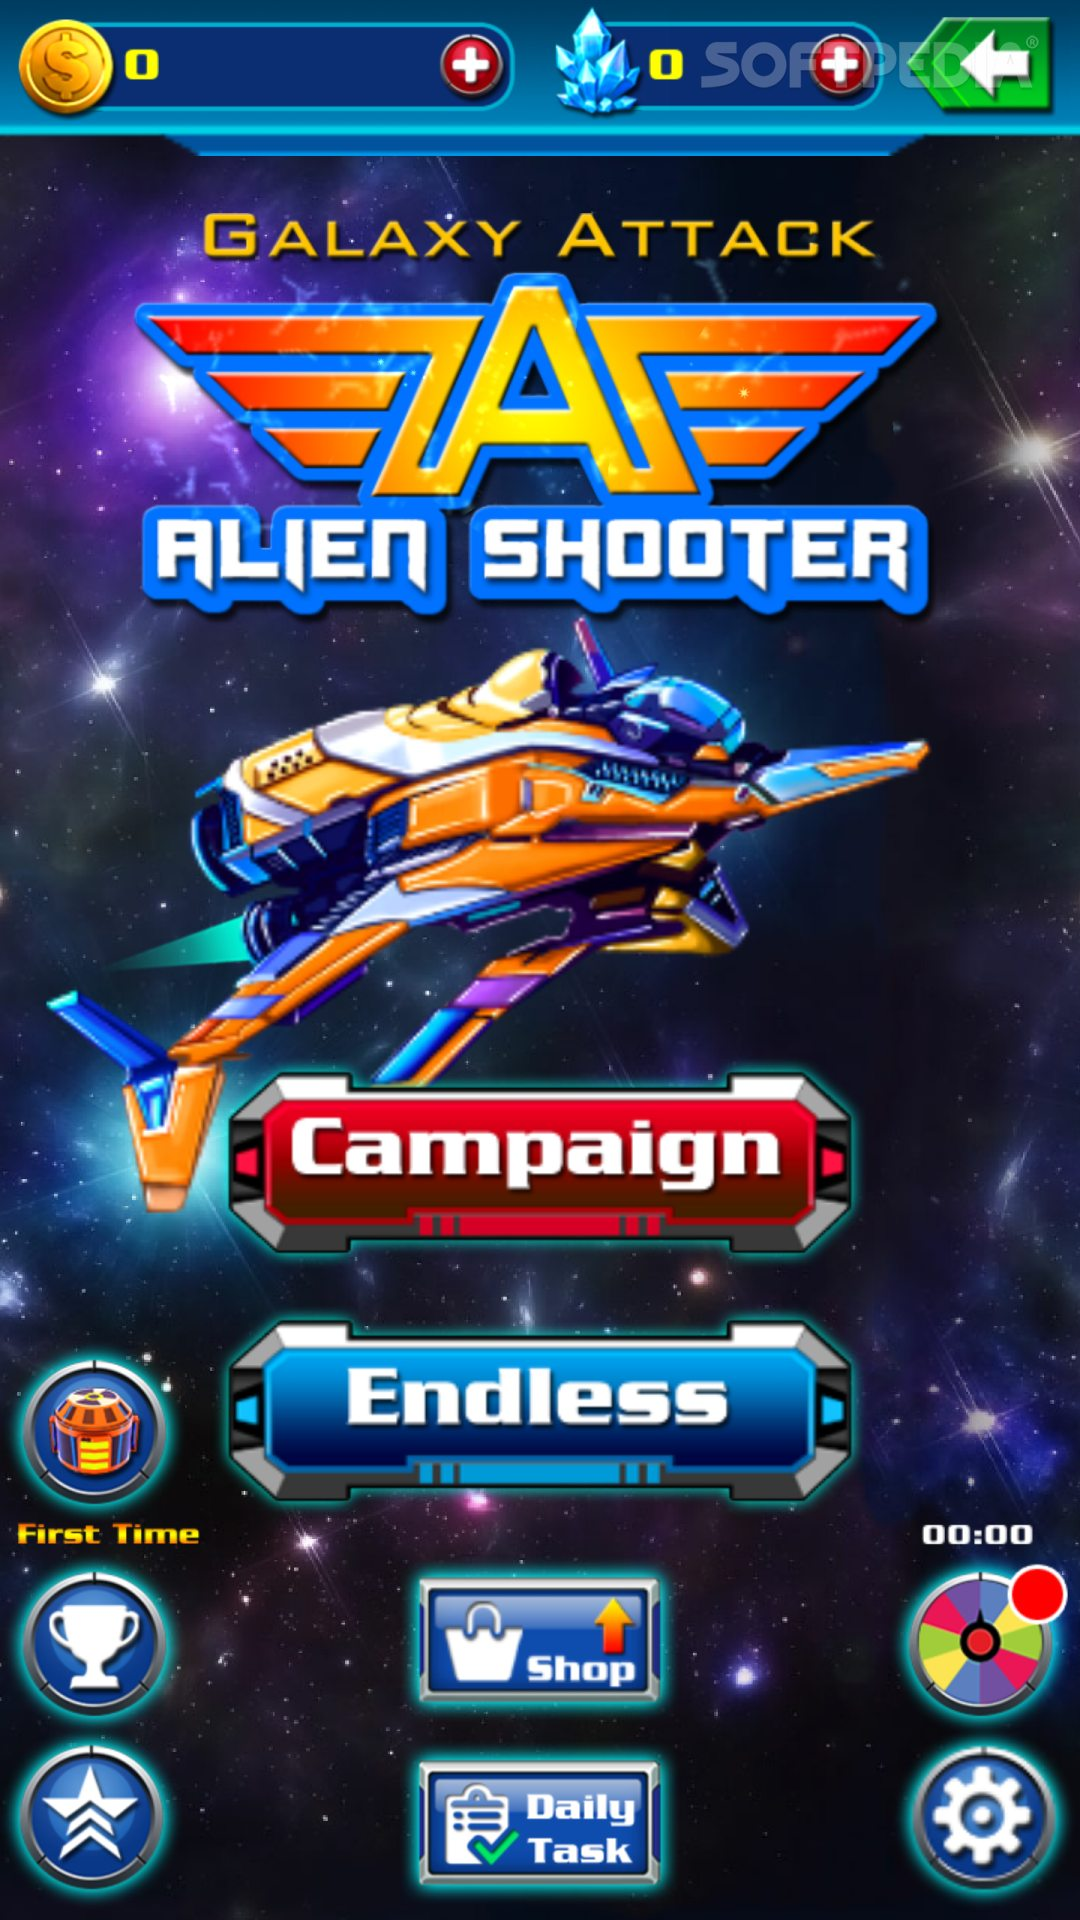 Galaxy Attack: Alien Shooter - screenshot #1 ...